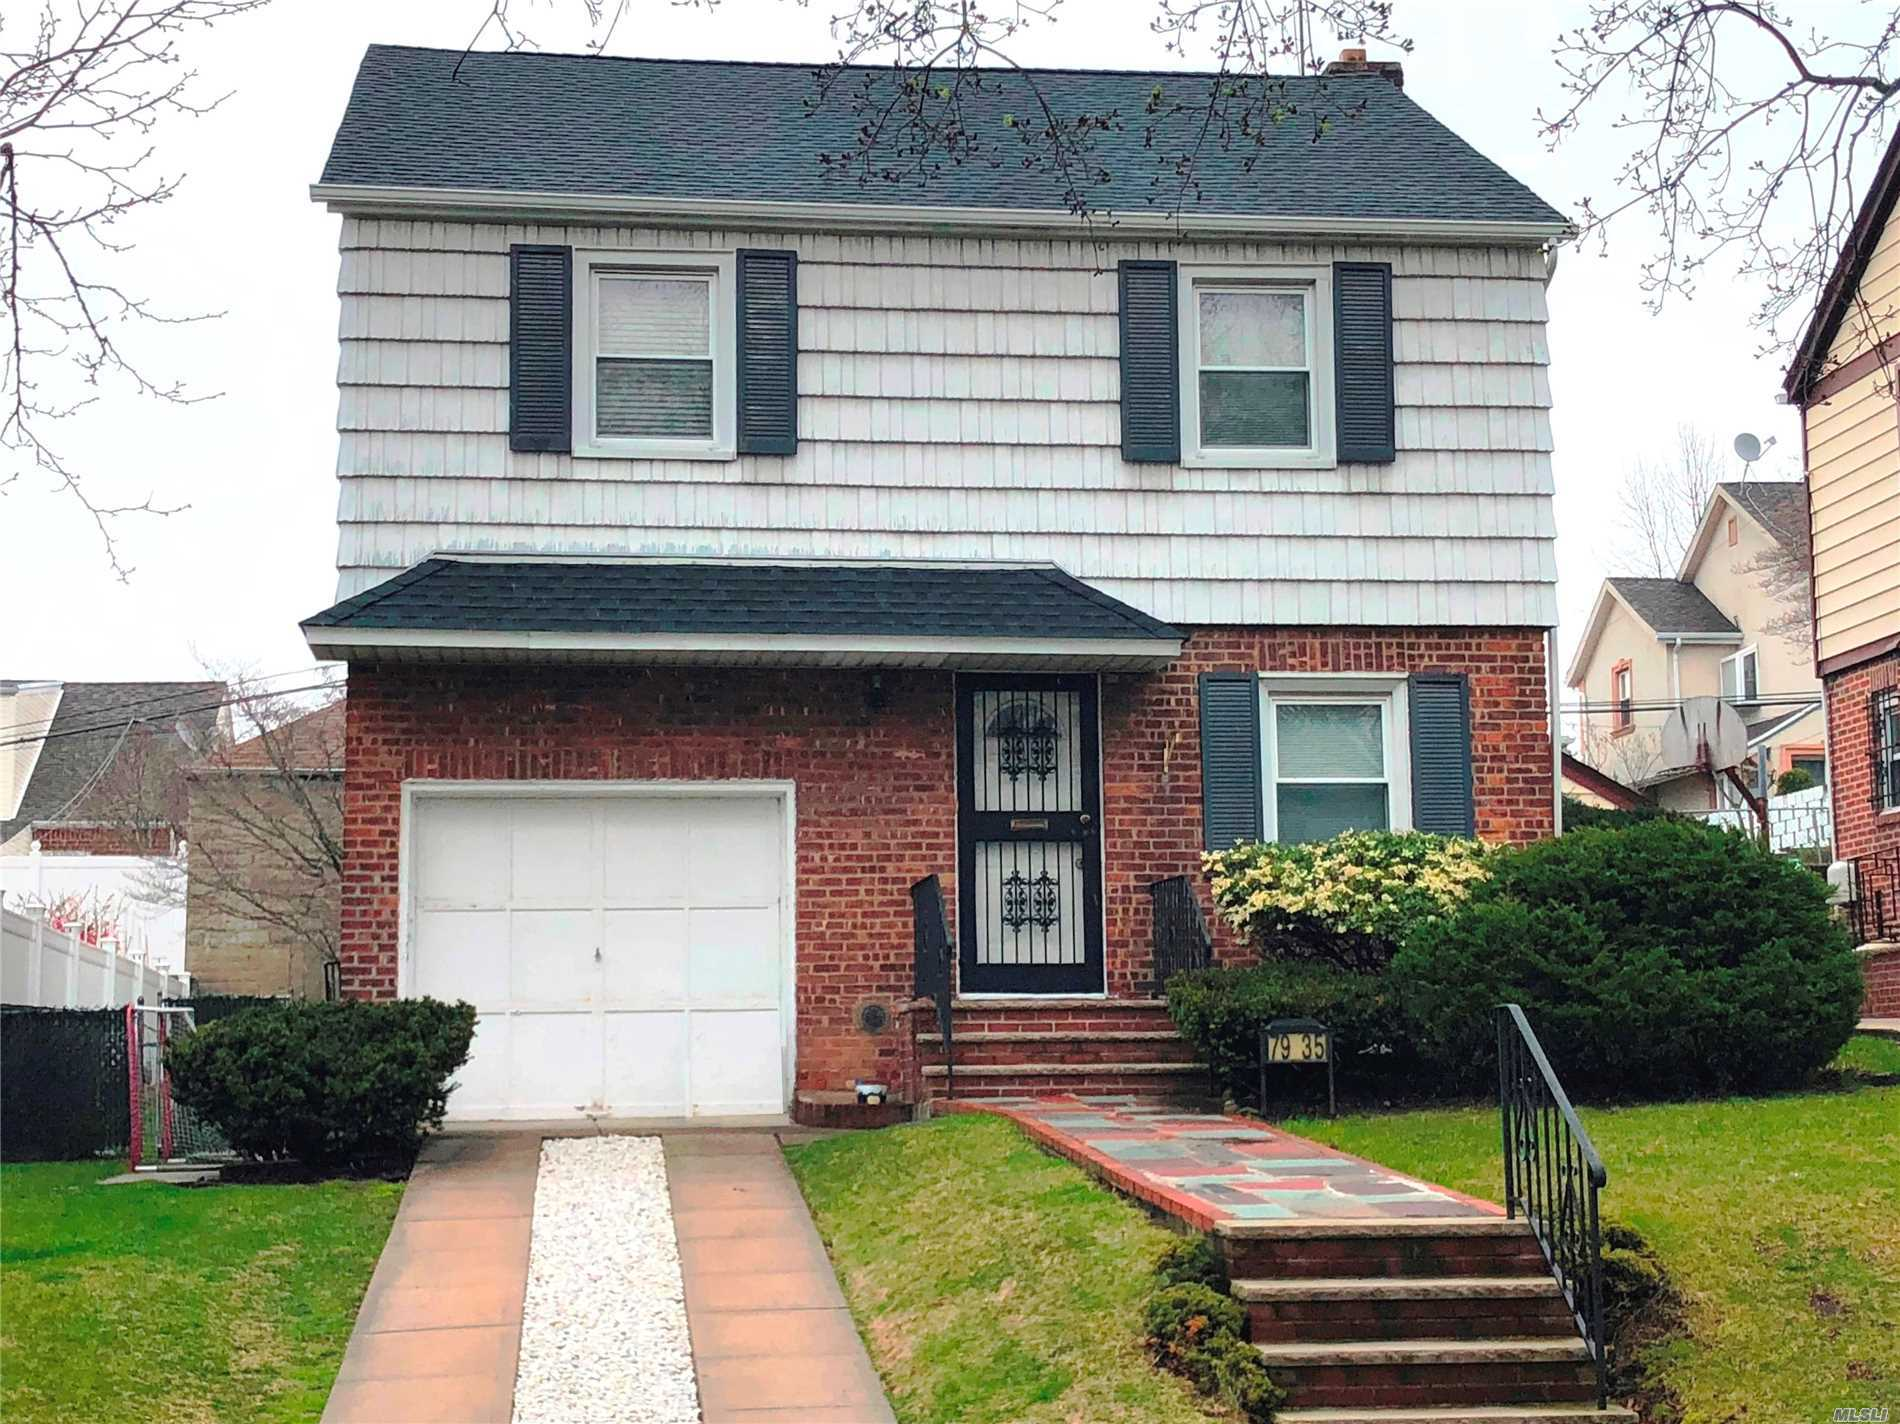 Whether You Move Right In, Or Bring A Few Decorating Ideas To This Brick And Frame Colonial, You Can Be Living In Style And Comfort In Hollis Hills In No Time! Set On A 45 X 100 Lot, This Charming Home Has Been Extremely Well Maintained, Featuring 3 Bedrooms, 1 Full Bath & 2 Half Baths, A Modern Kitchen, An Updated Bath, A Finished Basement And Much More!